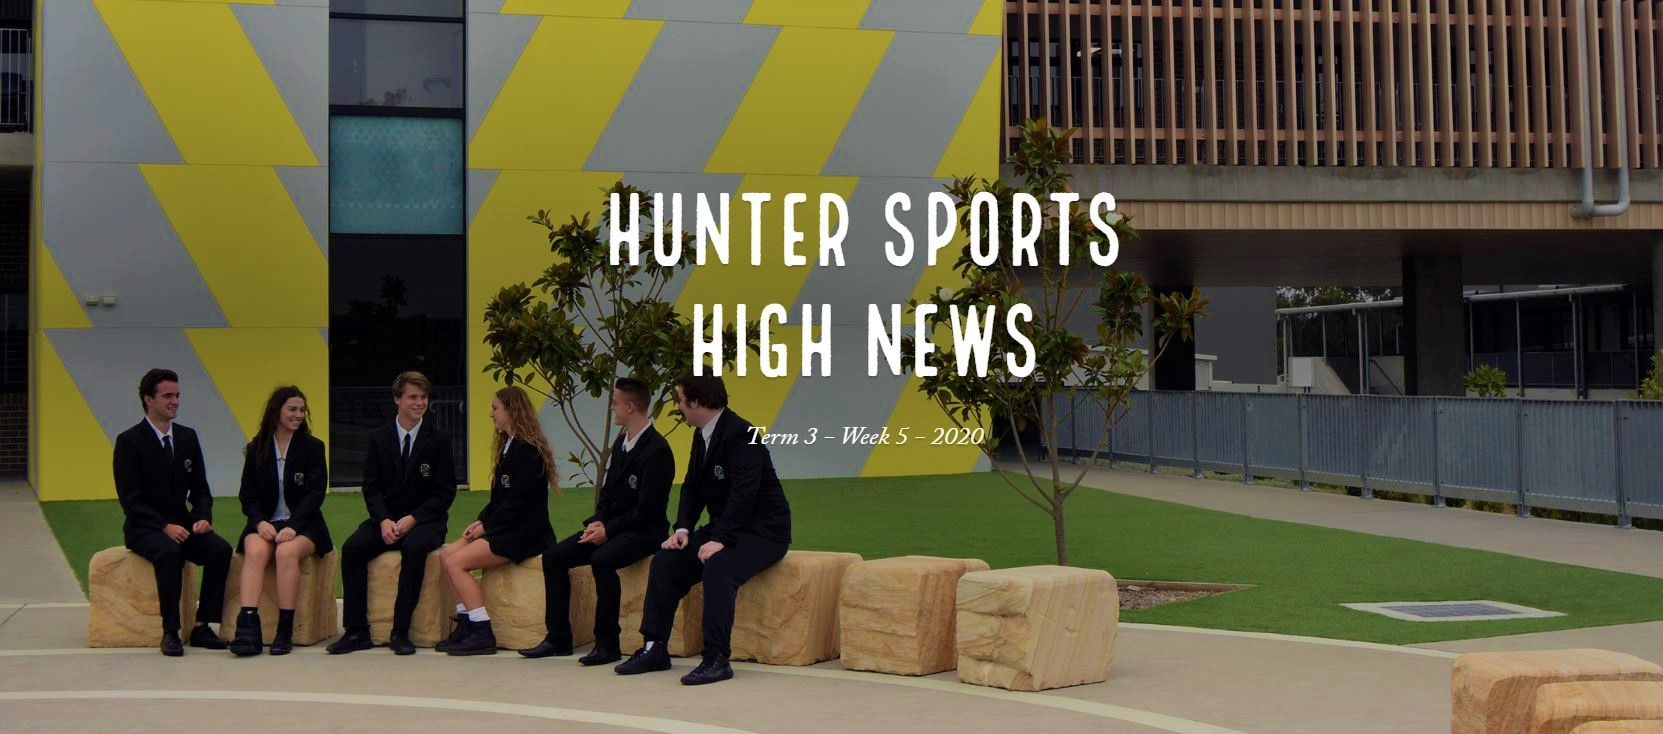 Newsletter Header with image of 6 student leaders talking at school